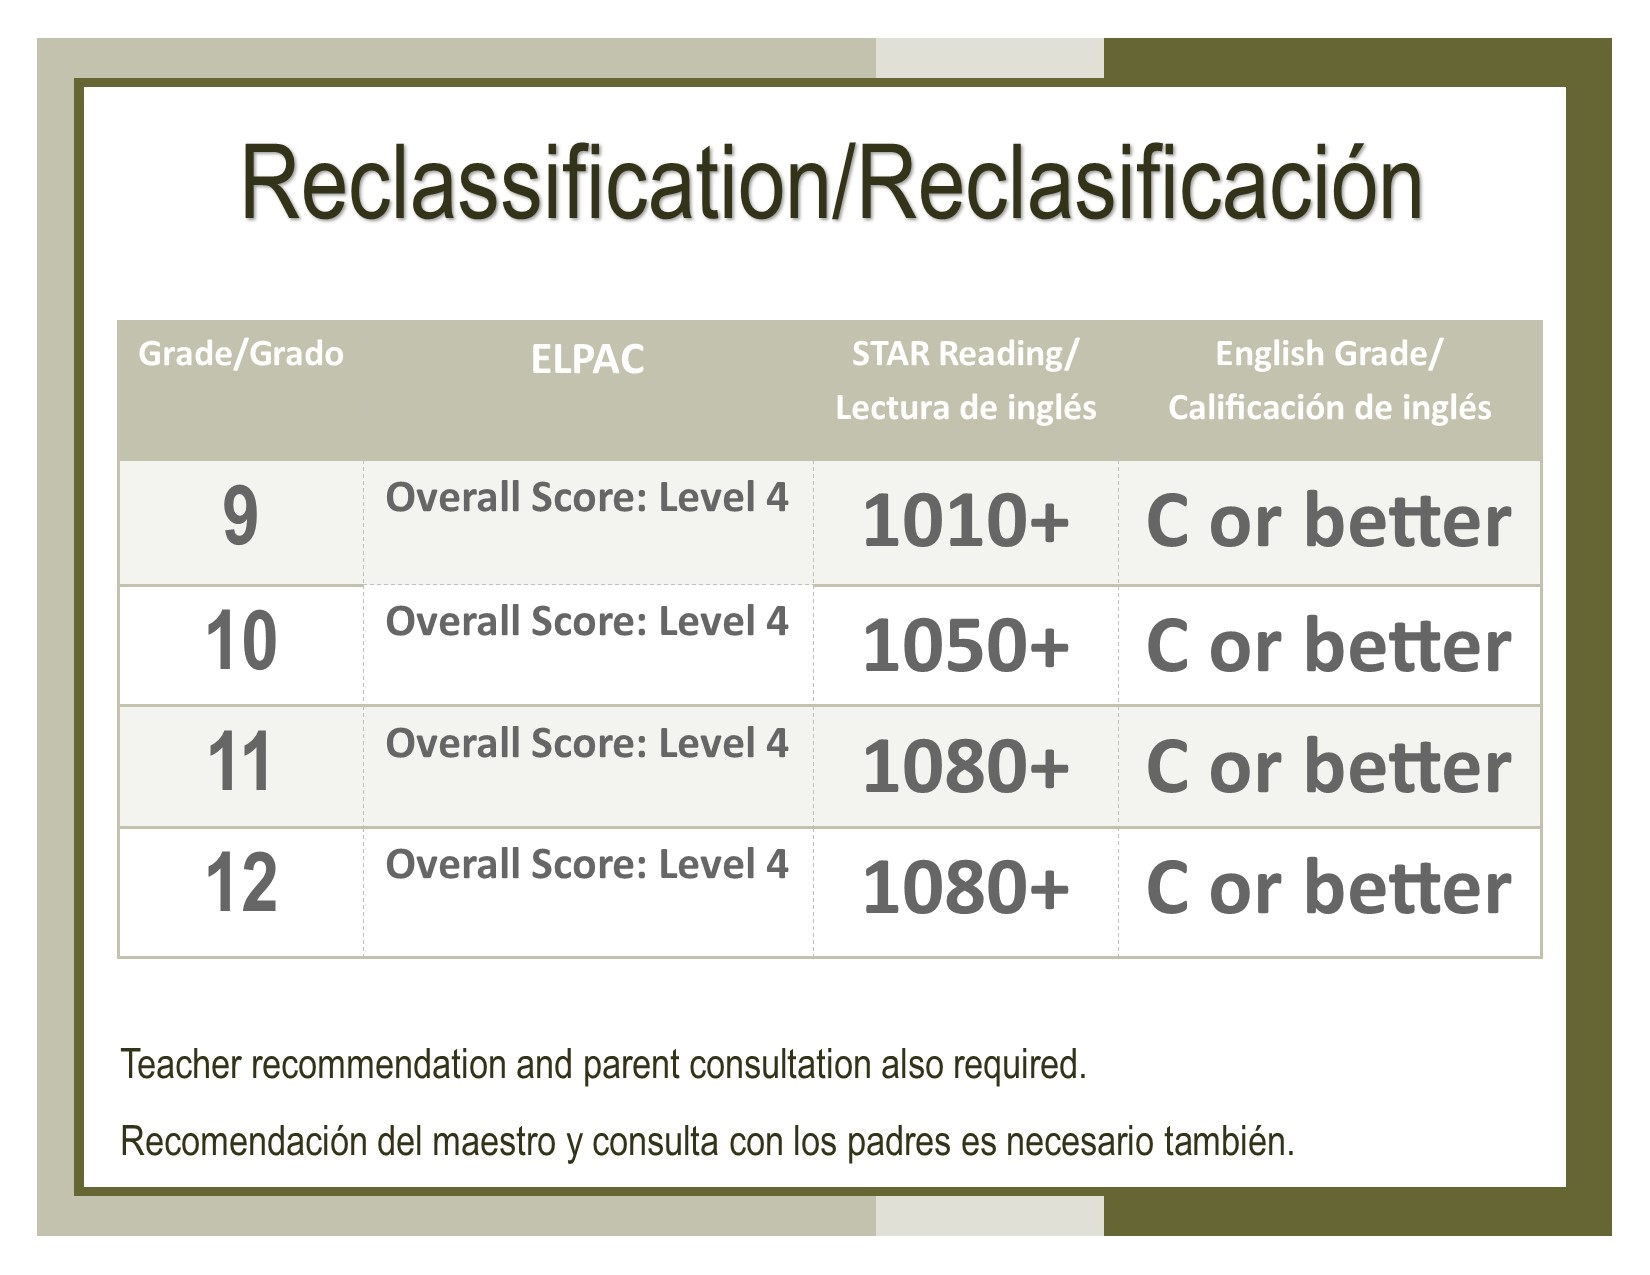 Reclassification